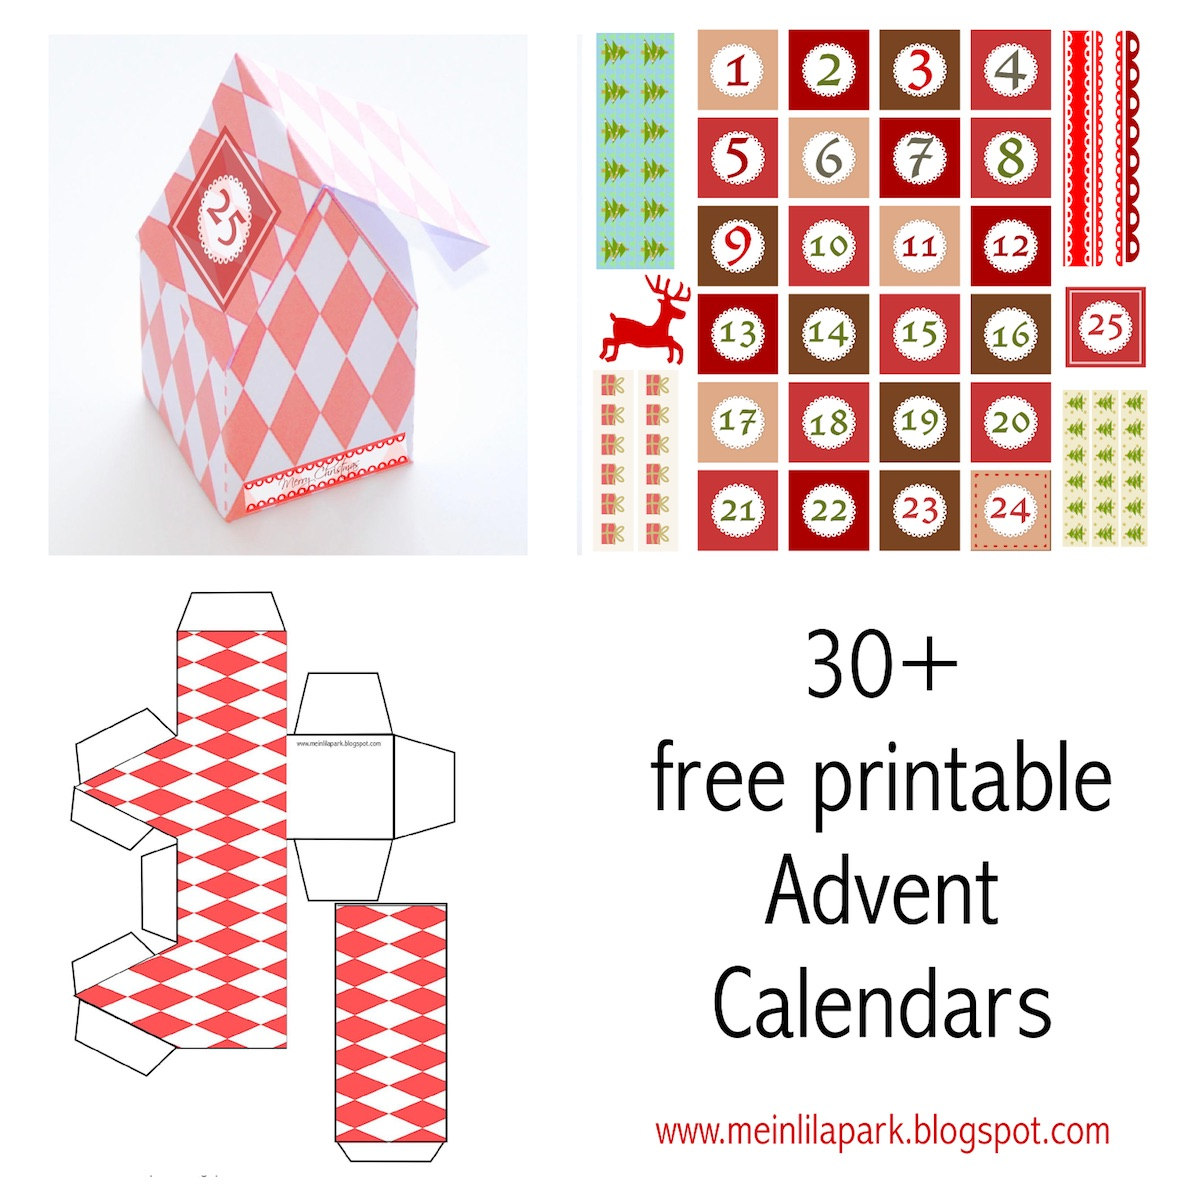 30 free printable advent calendar templates adventskalender 30 free printable advent calendar templates adventskalender download round up saigontimesfo